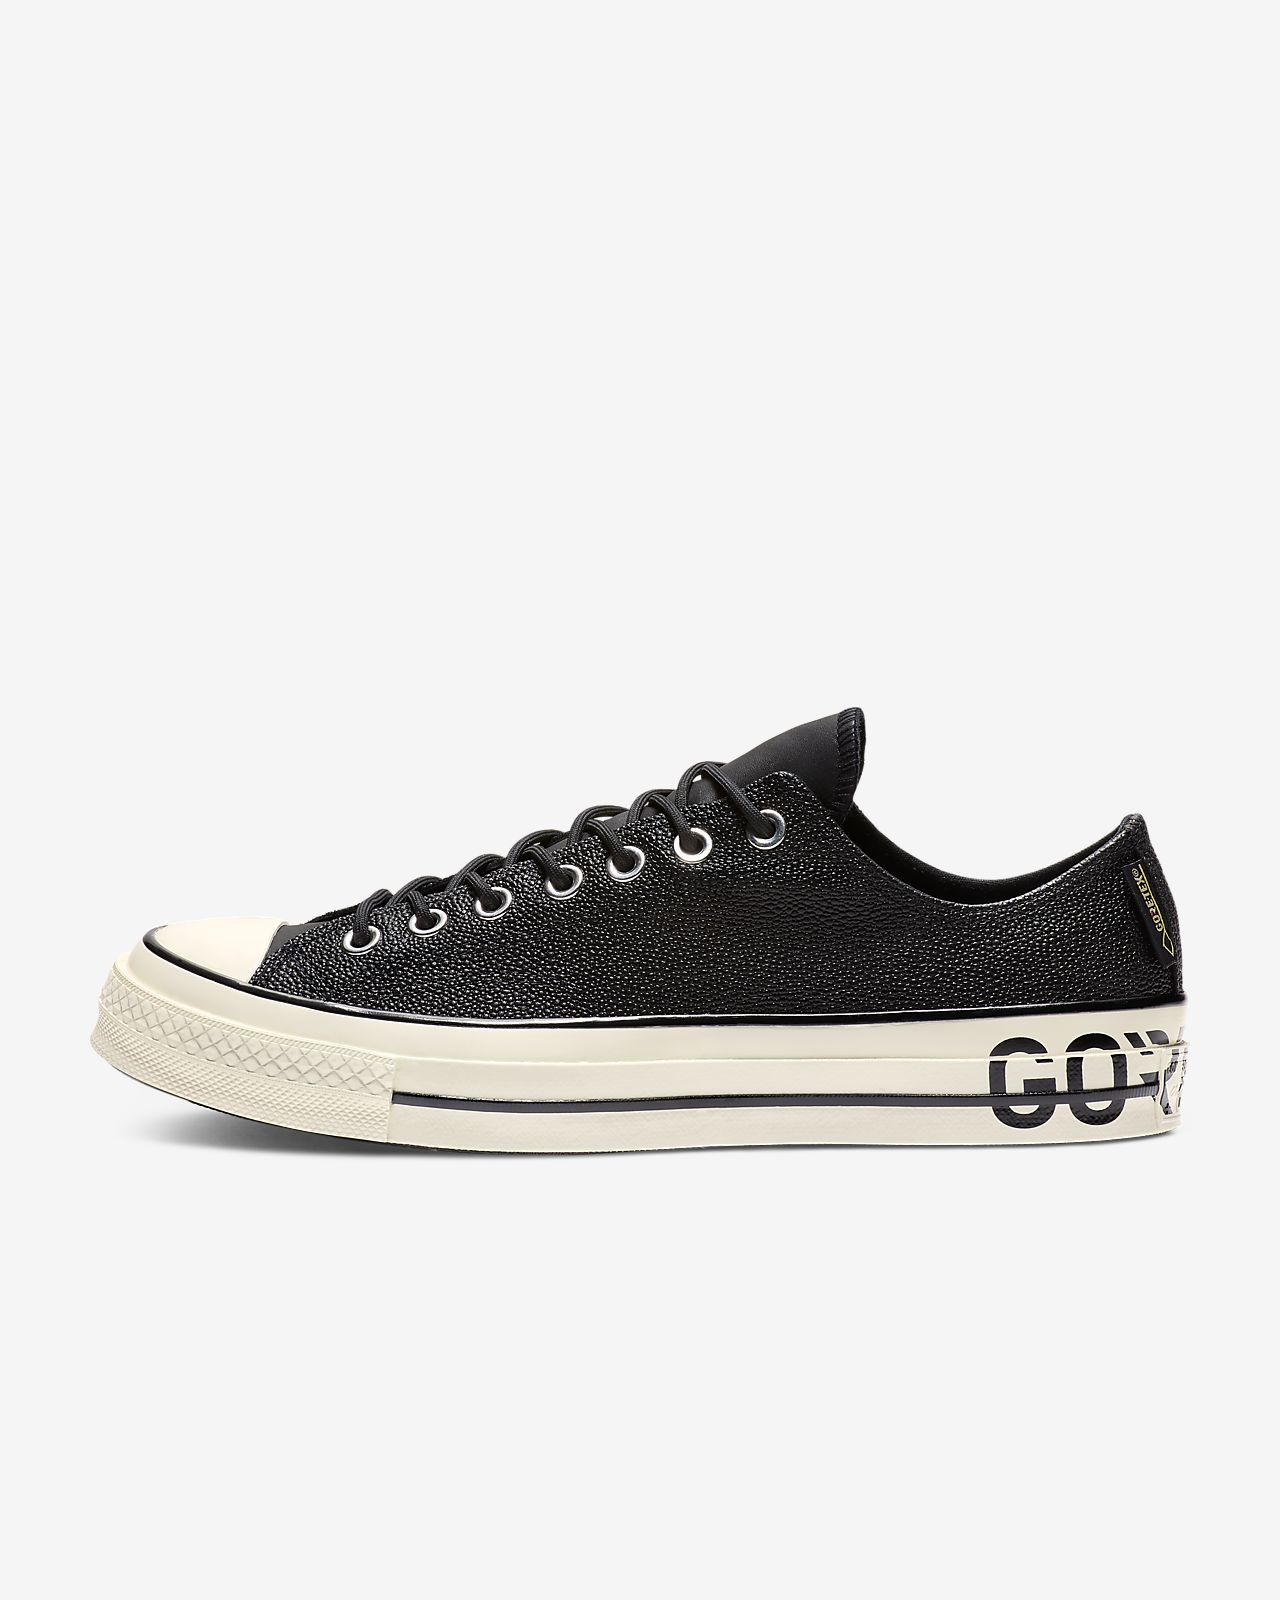 Chuck 70 GORE-TEX Leather Low Top Unisex Shoe